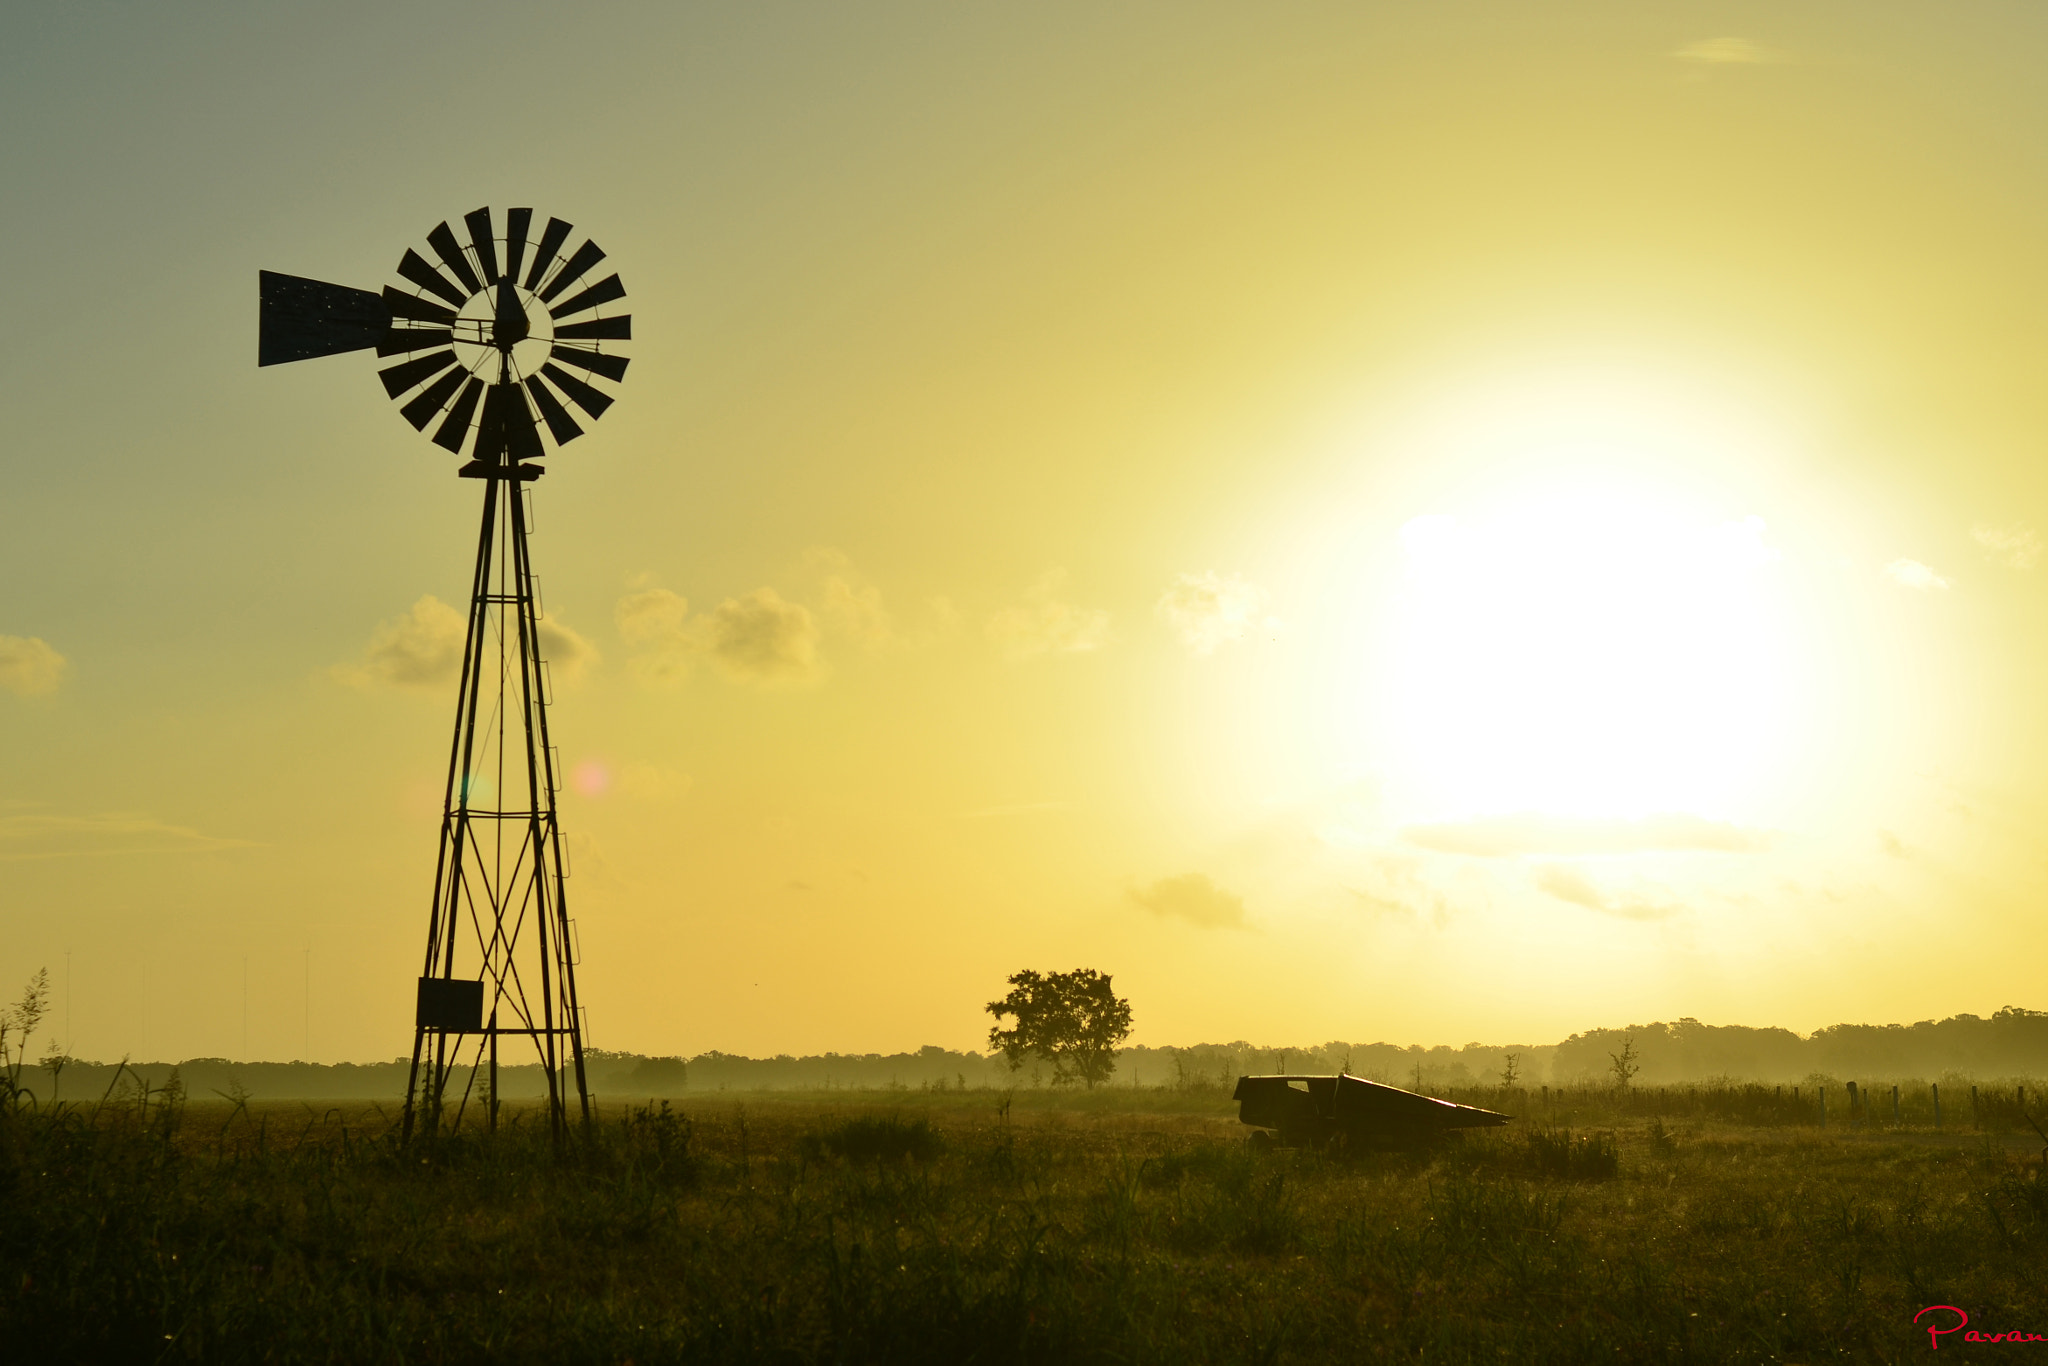 Photograph Texan Country Morn by Pavan  Kumar on 500px